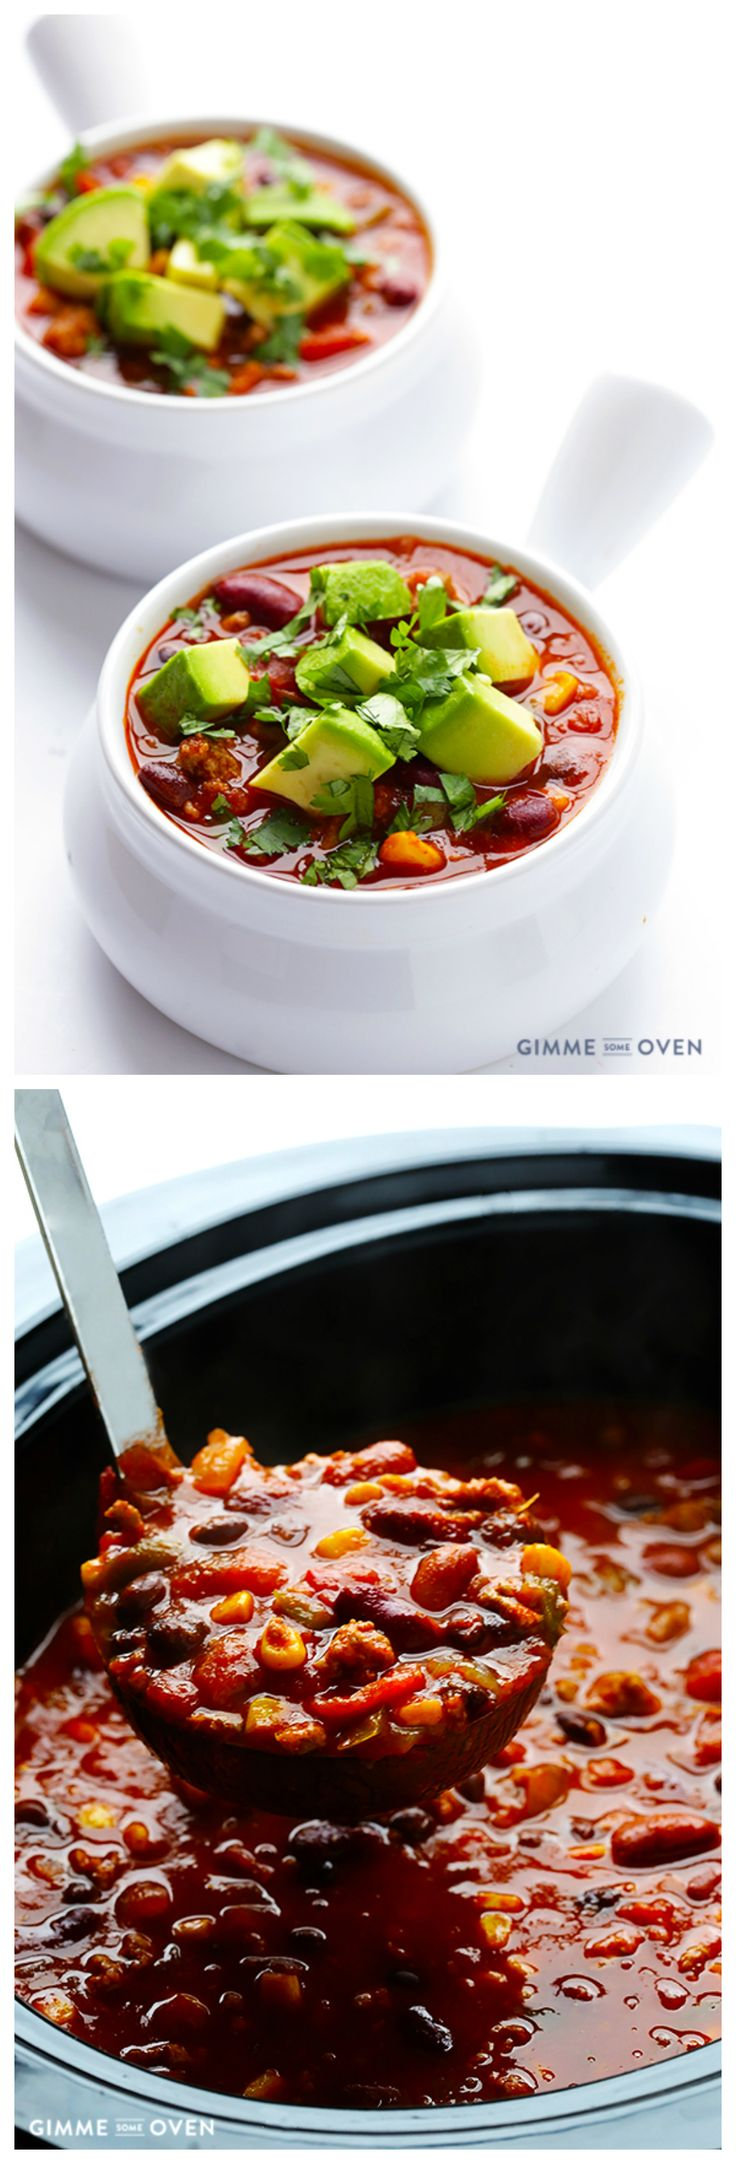 Slow Cooker Taco Turkey Chili -- all you need is 15 minutes of prep for this delicious, comforting, and healthier chili | gimmesomeoven.com #glutenfree #slowcooker #crockpot